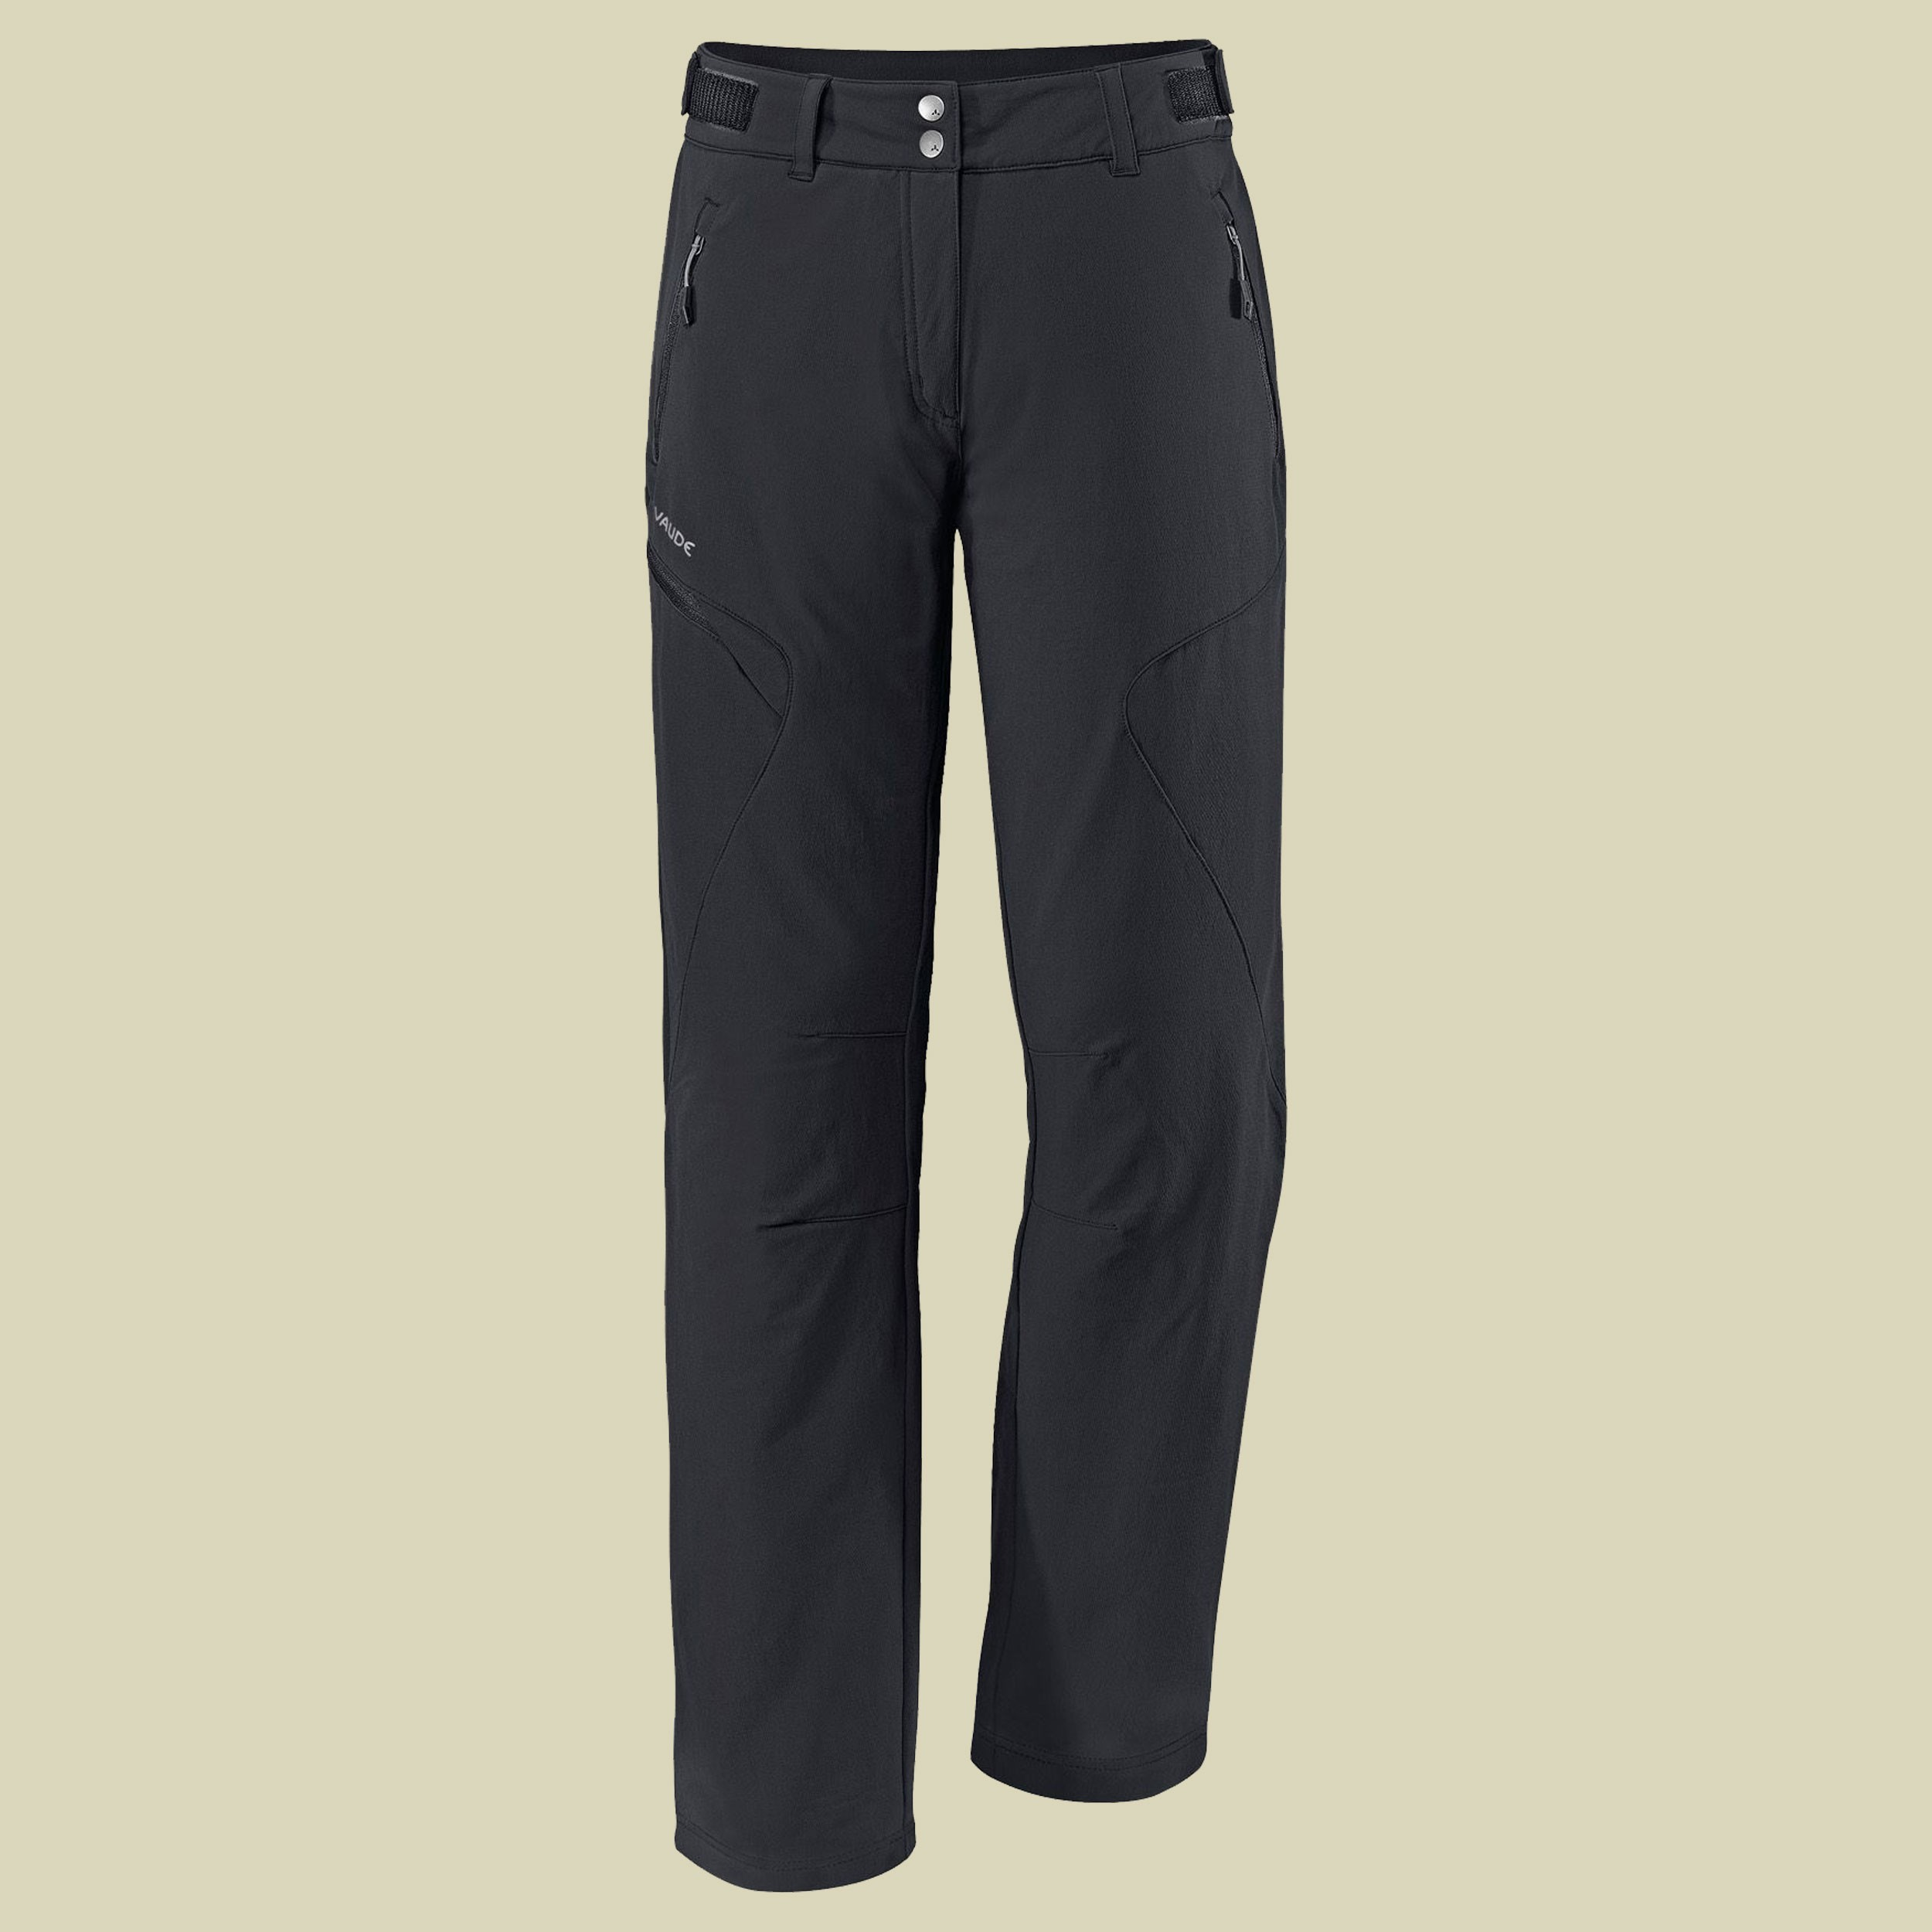 Jutul Pants Women